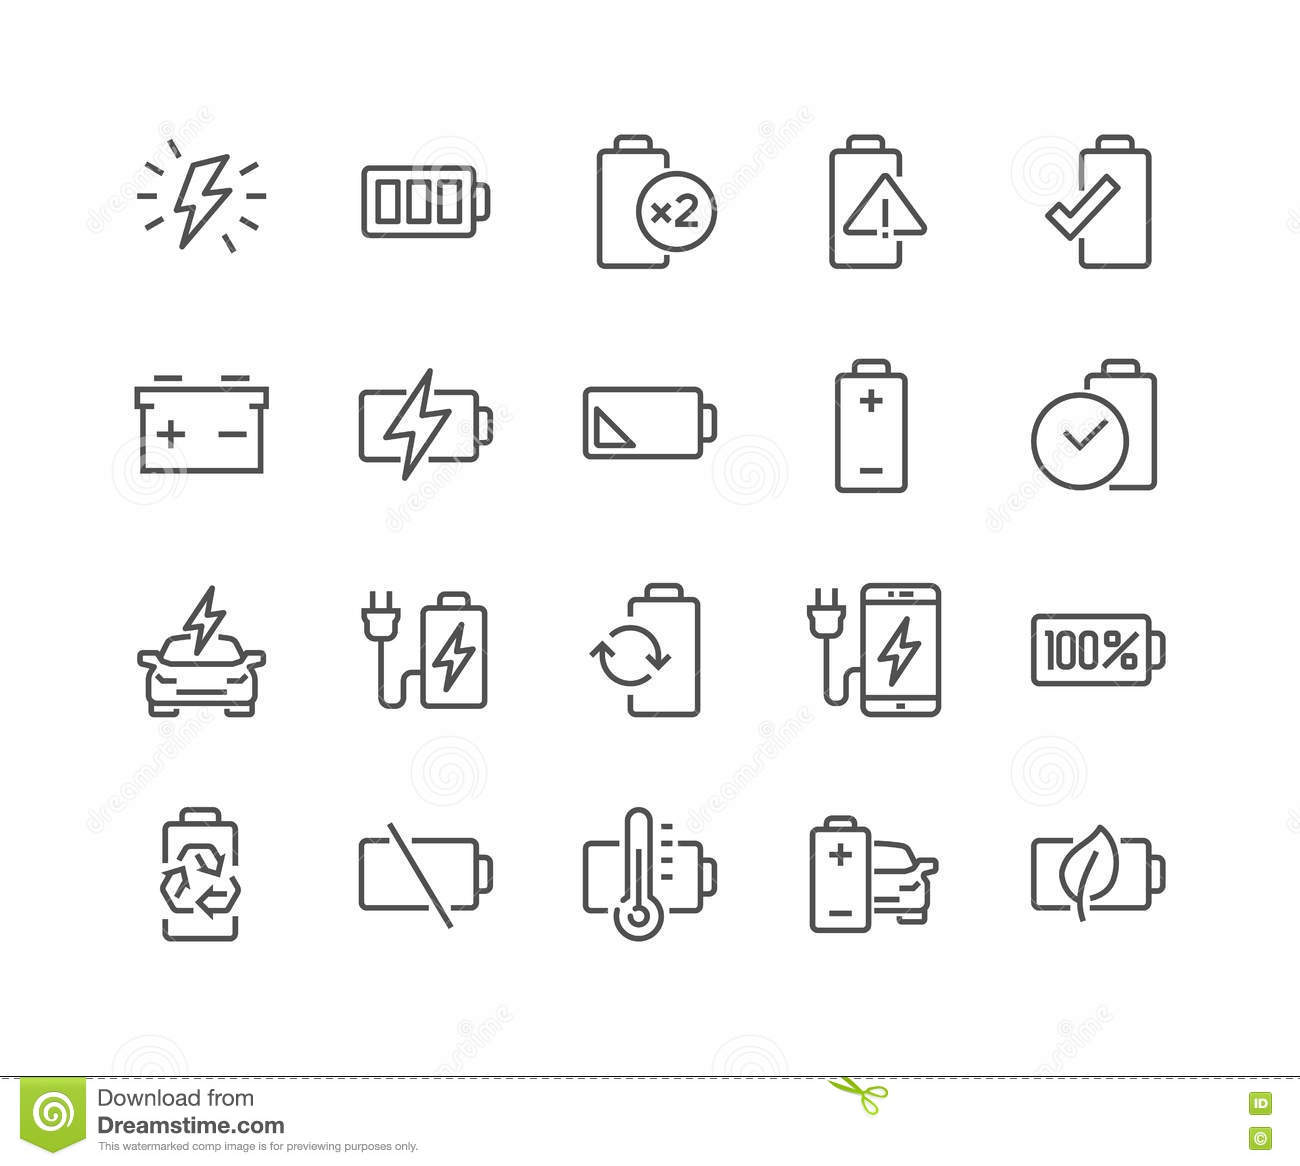 Low Battery Line Icon Vector Illustration